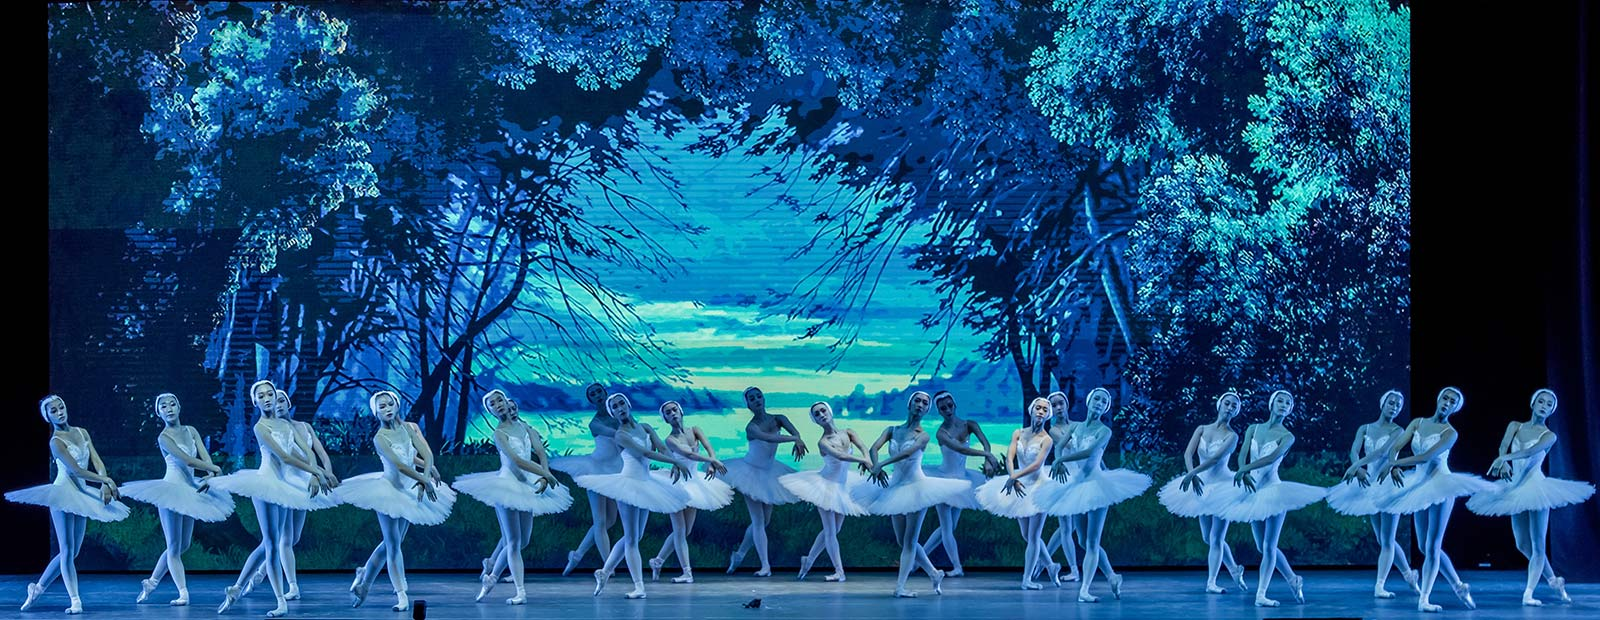 Beauty of the swan lake presented by the Tianjin Ballet